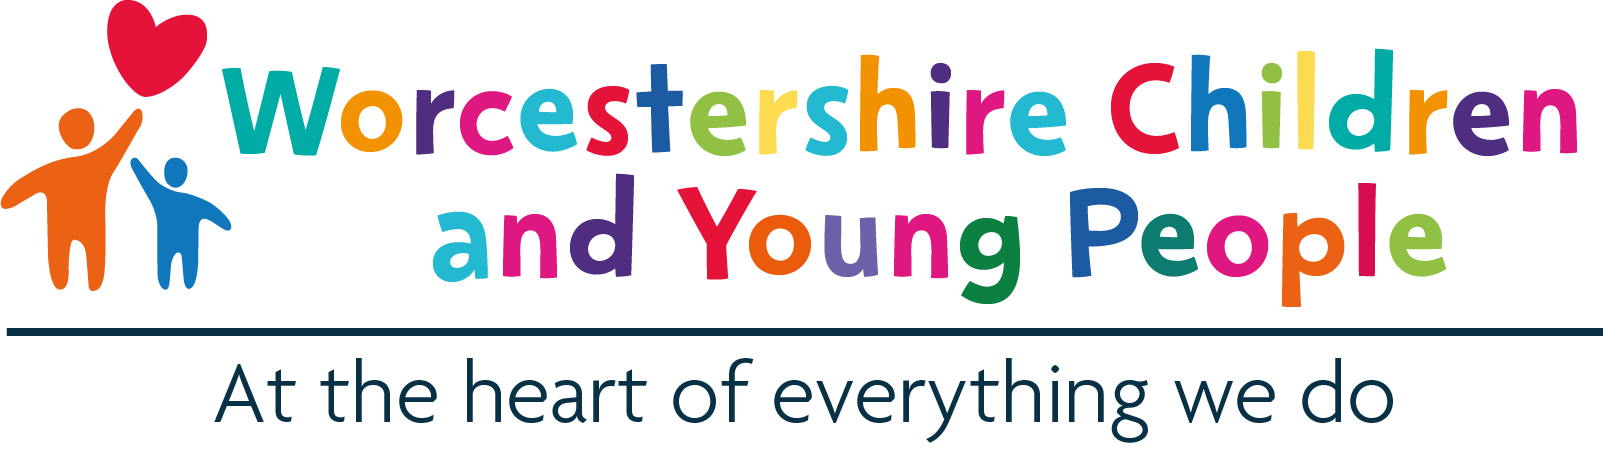 Worcestershire Children and Young People